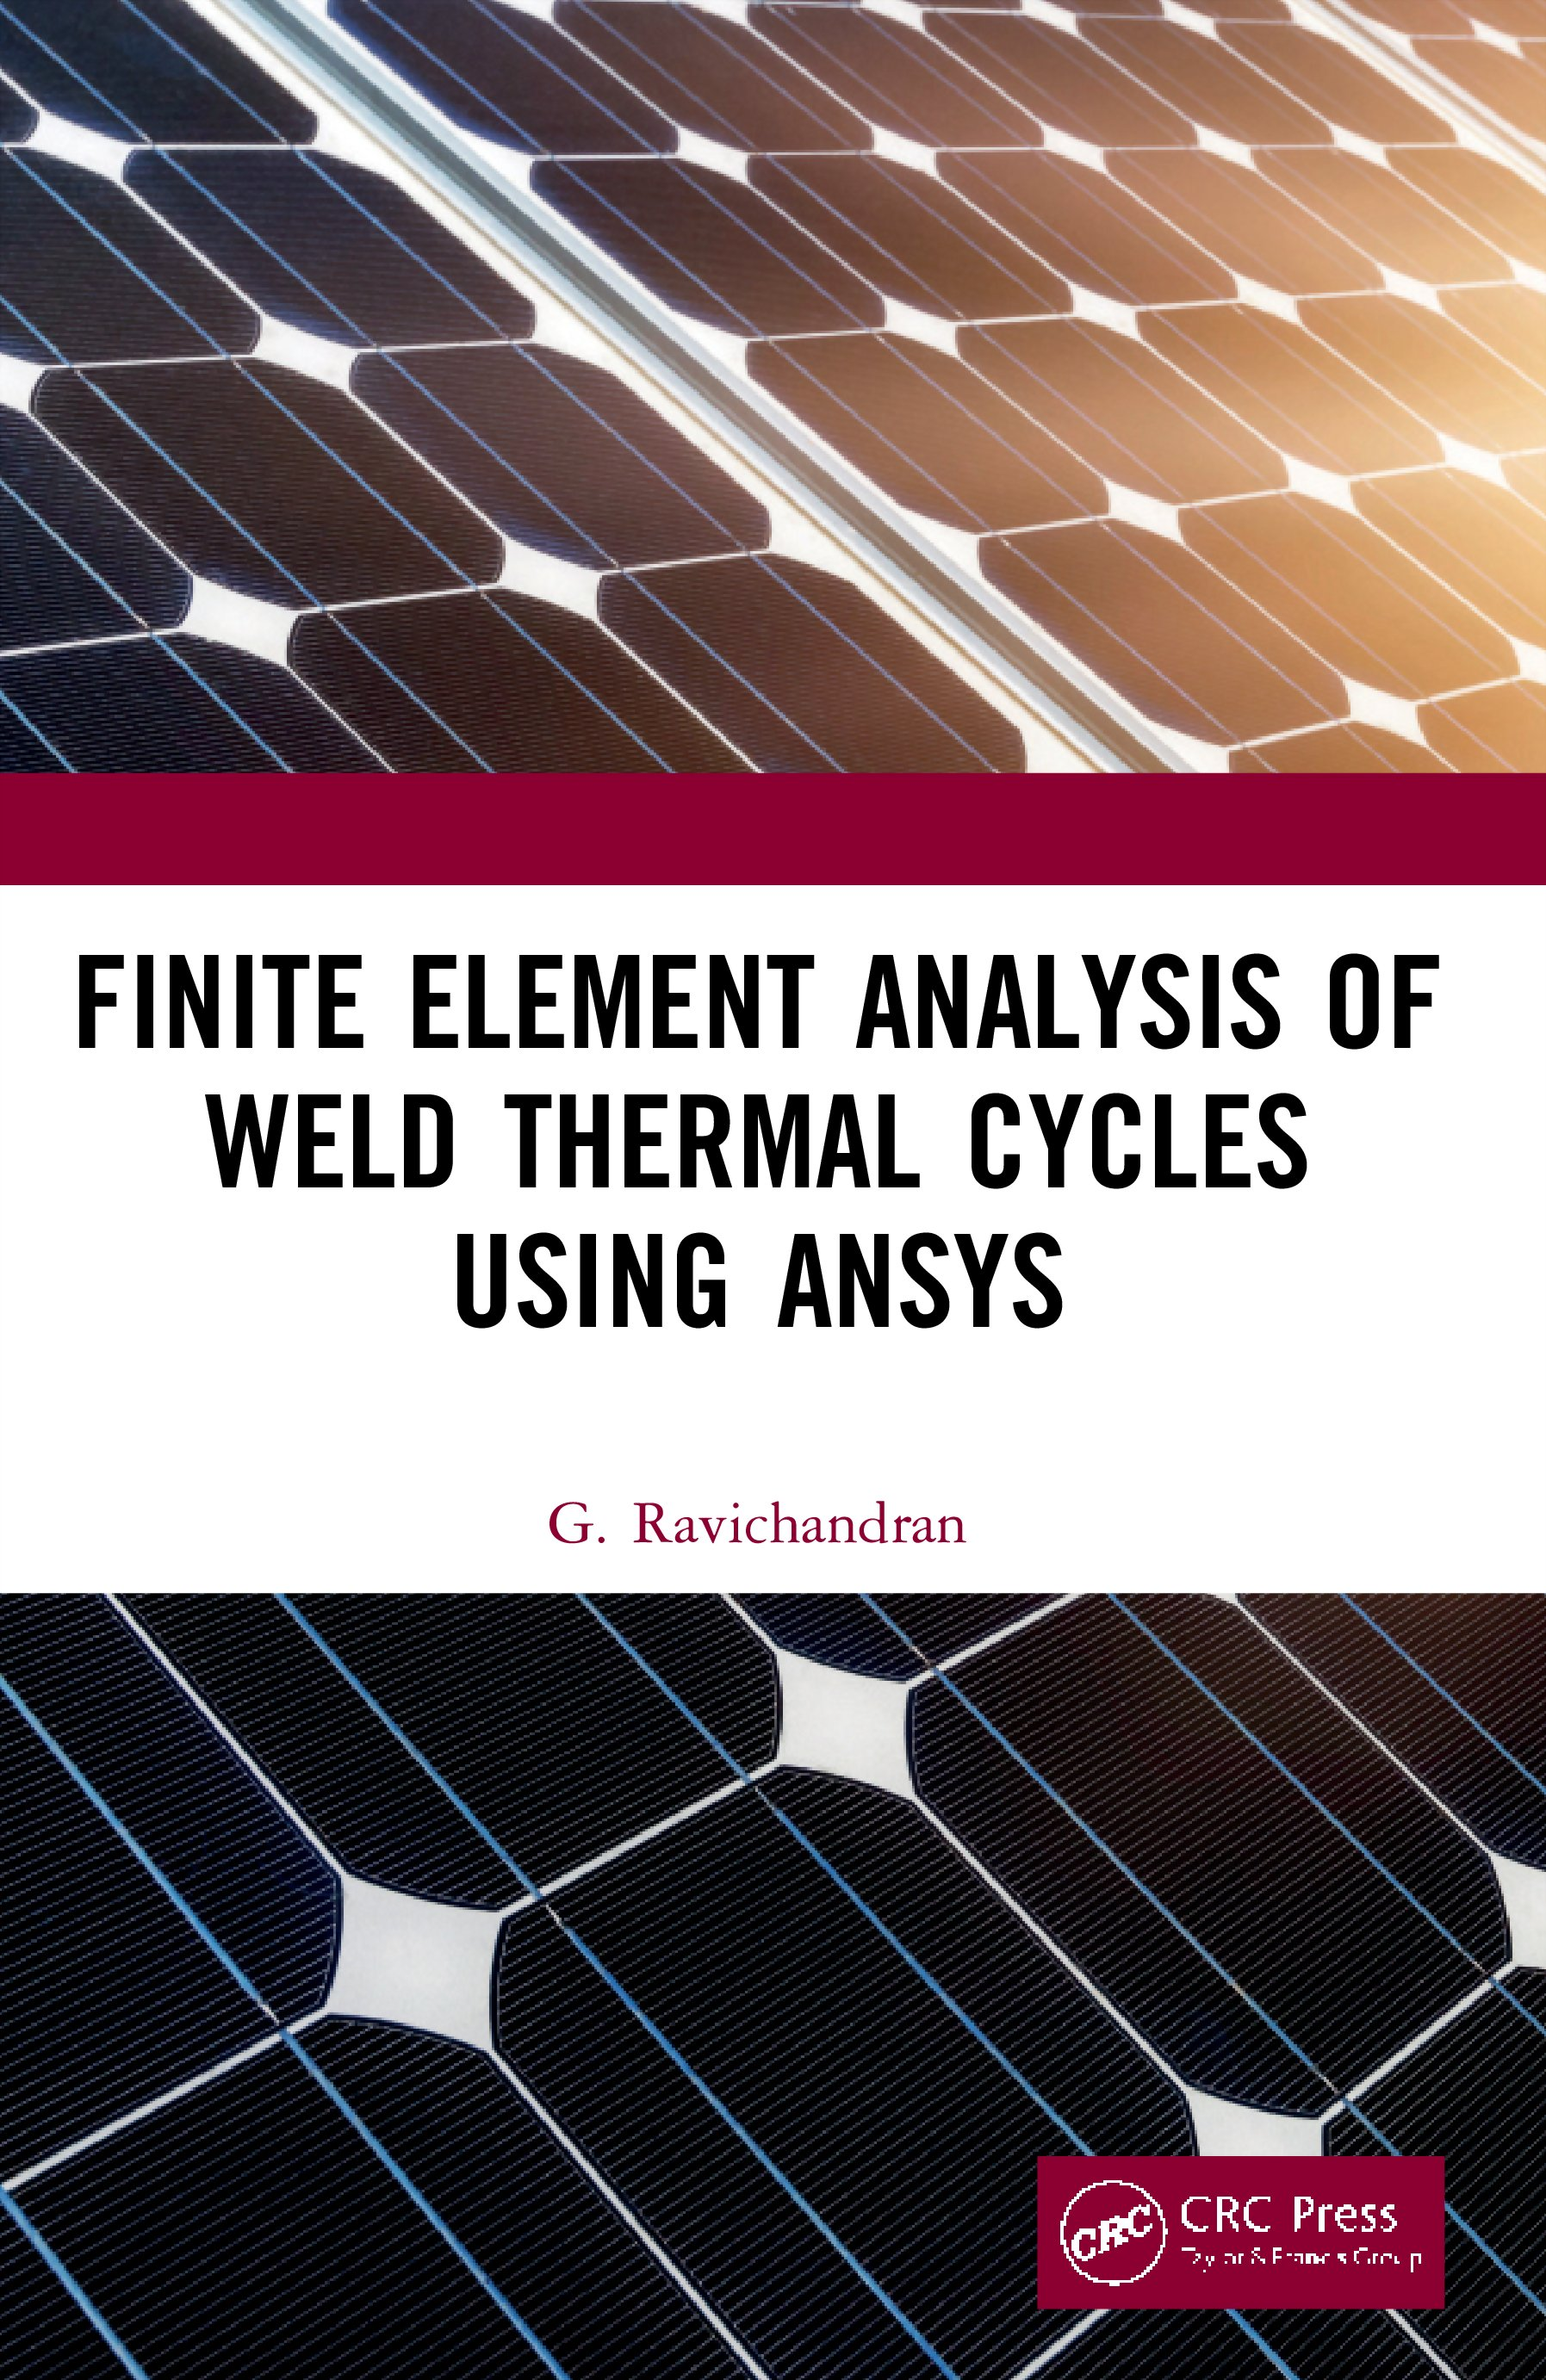 Finite Element Analysis of Weld Thermal Cycles Using ANSYS book cover